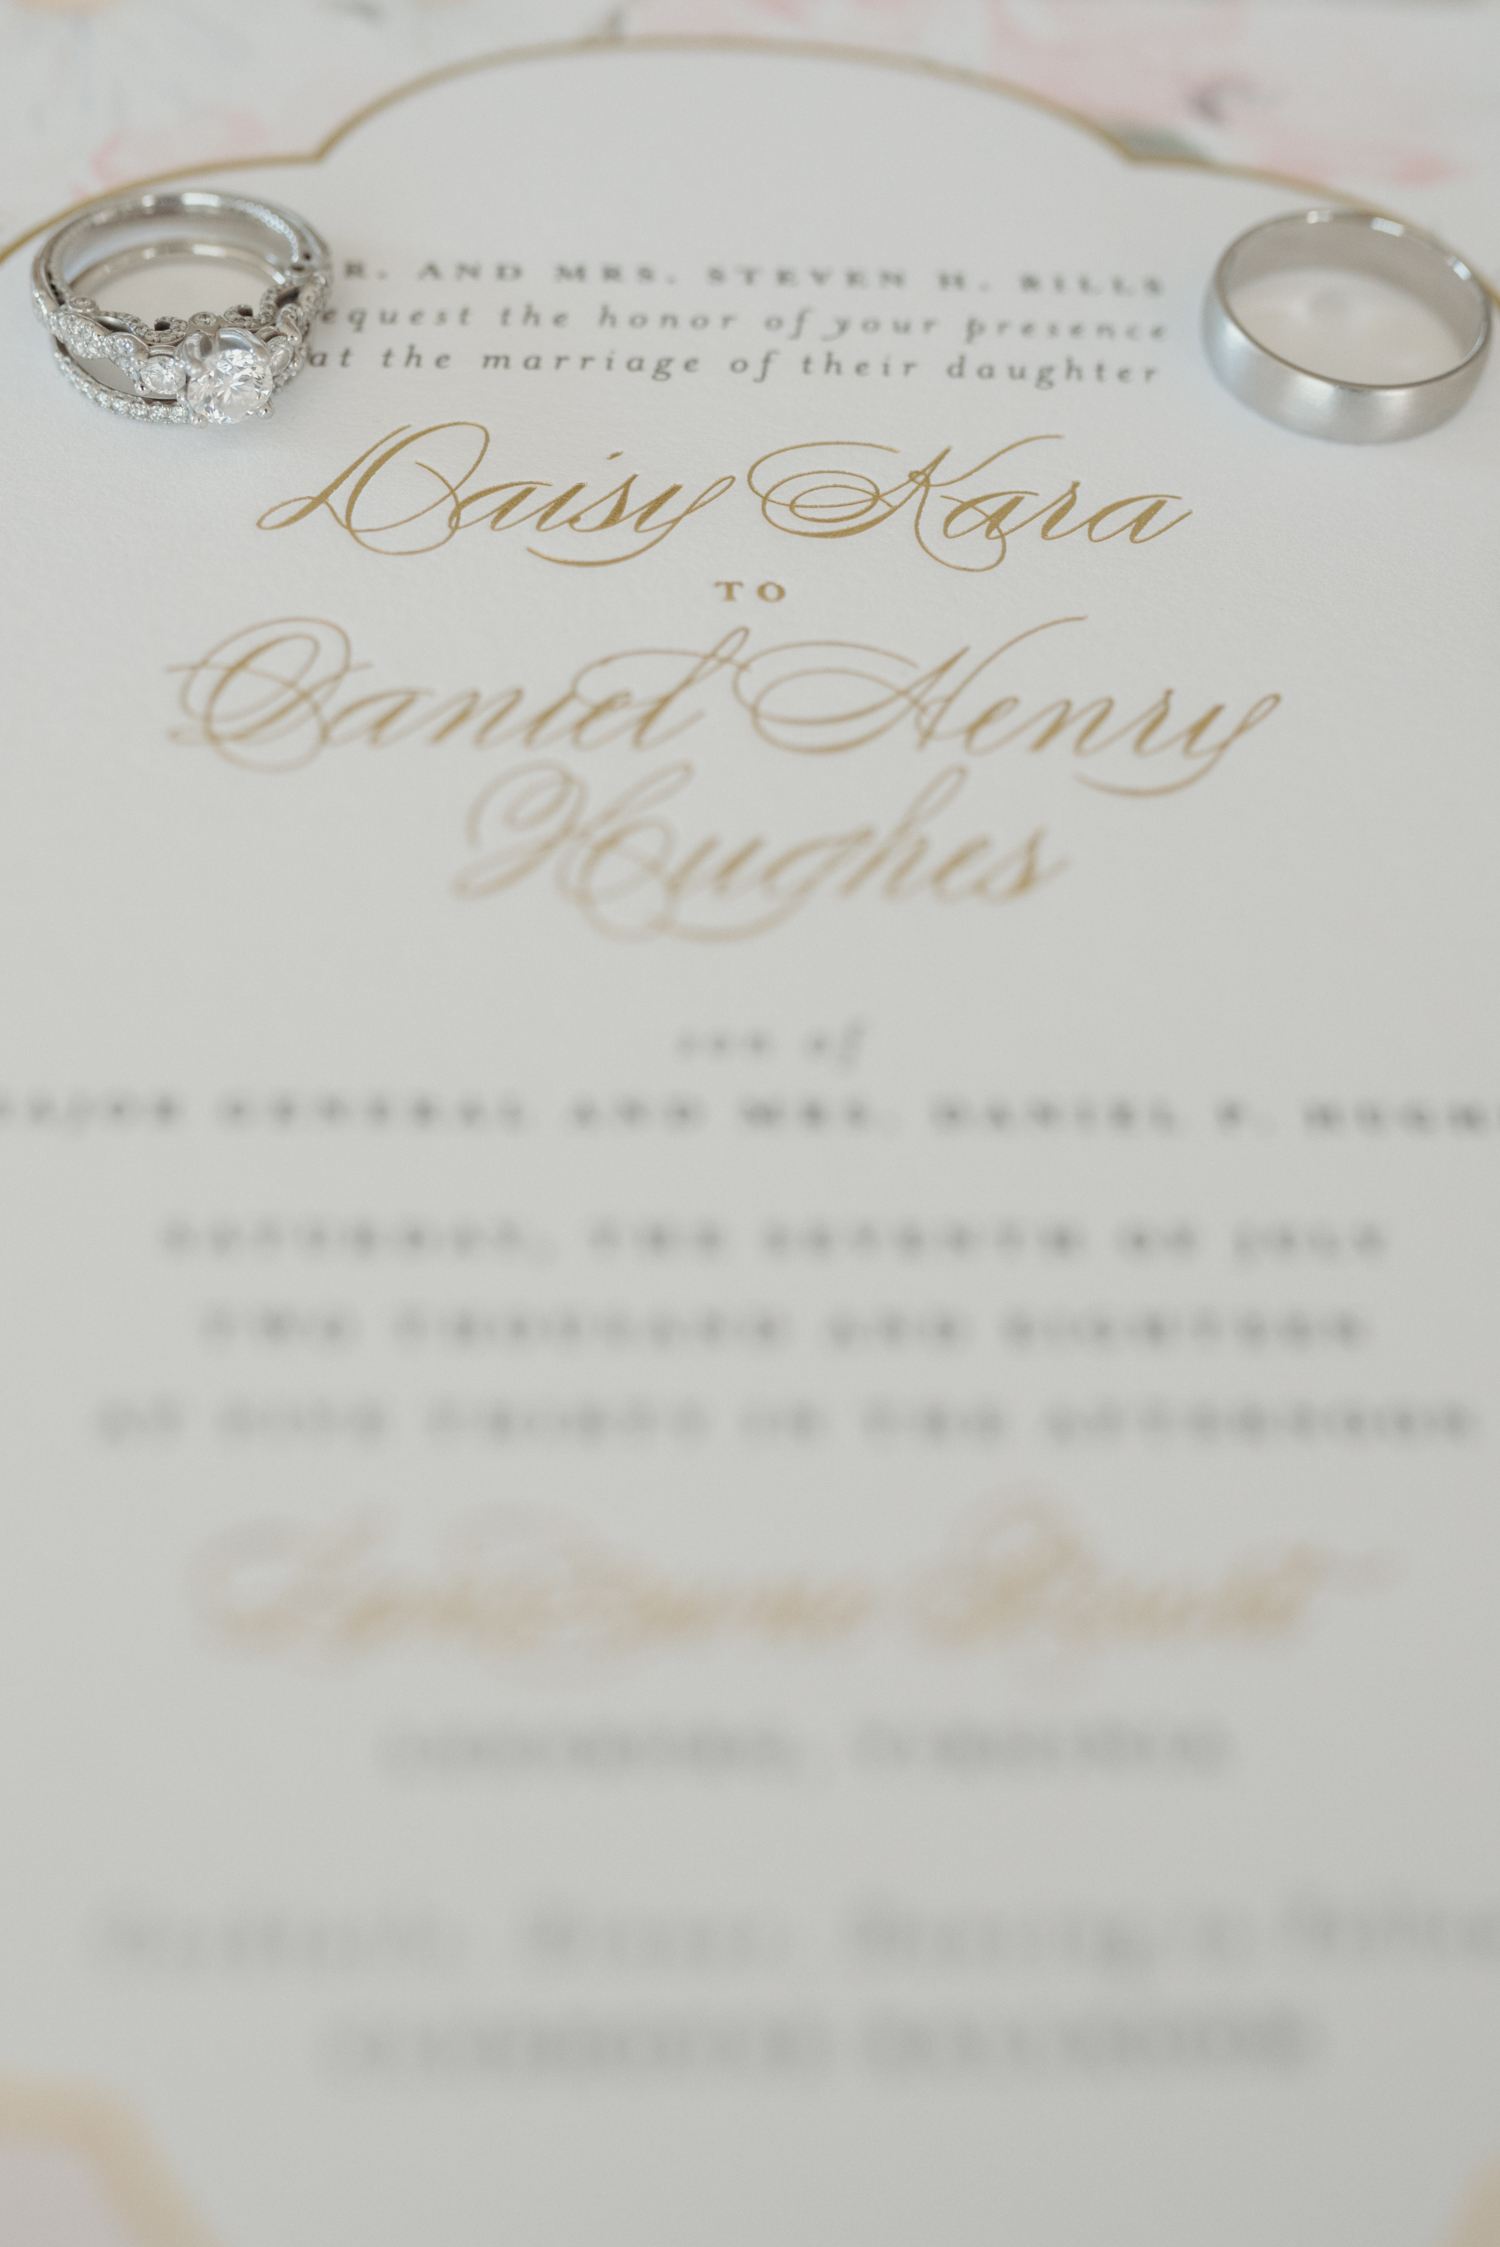 A couple's wedding rings sit on their wedding invitation.